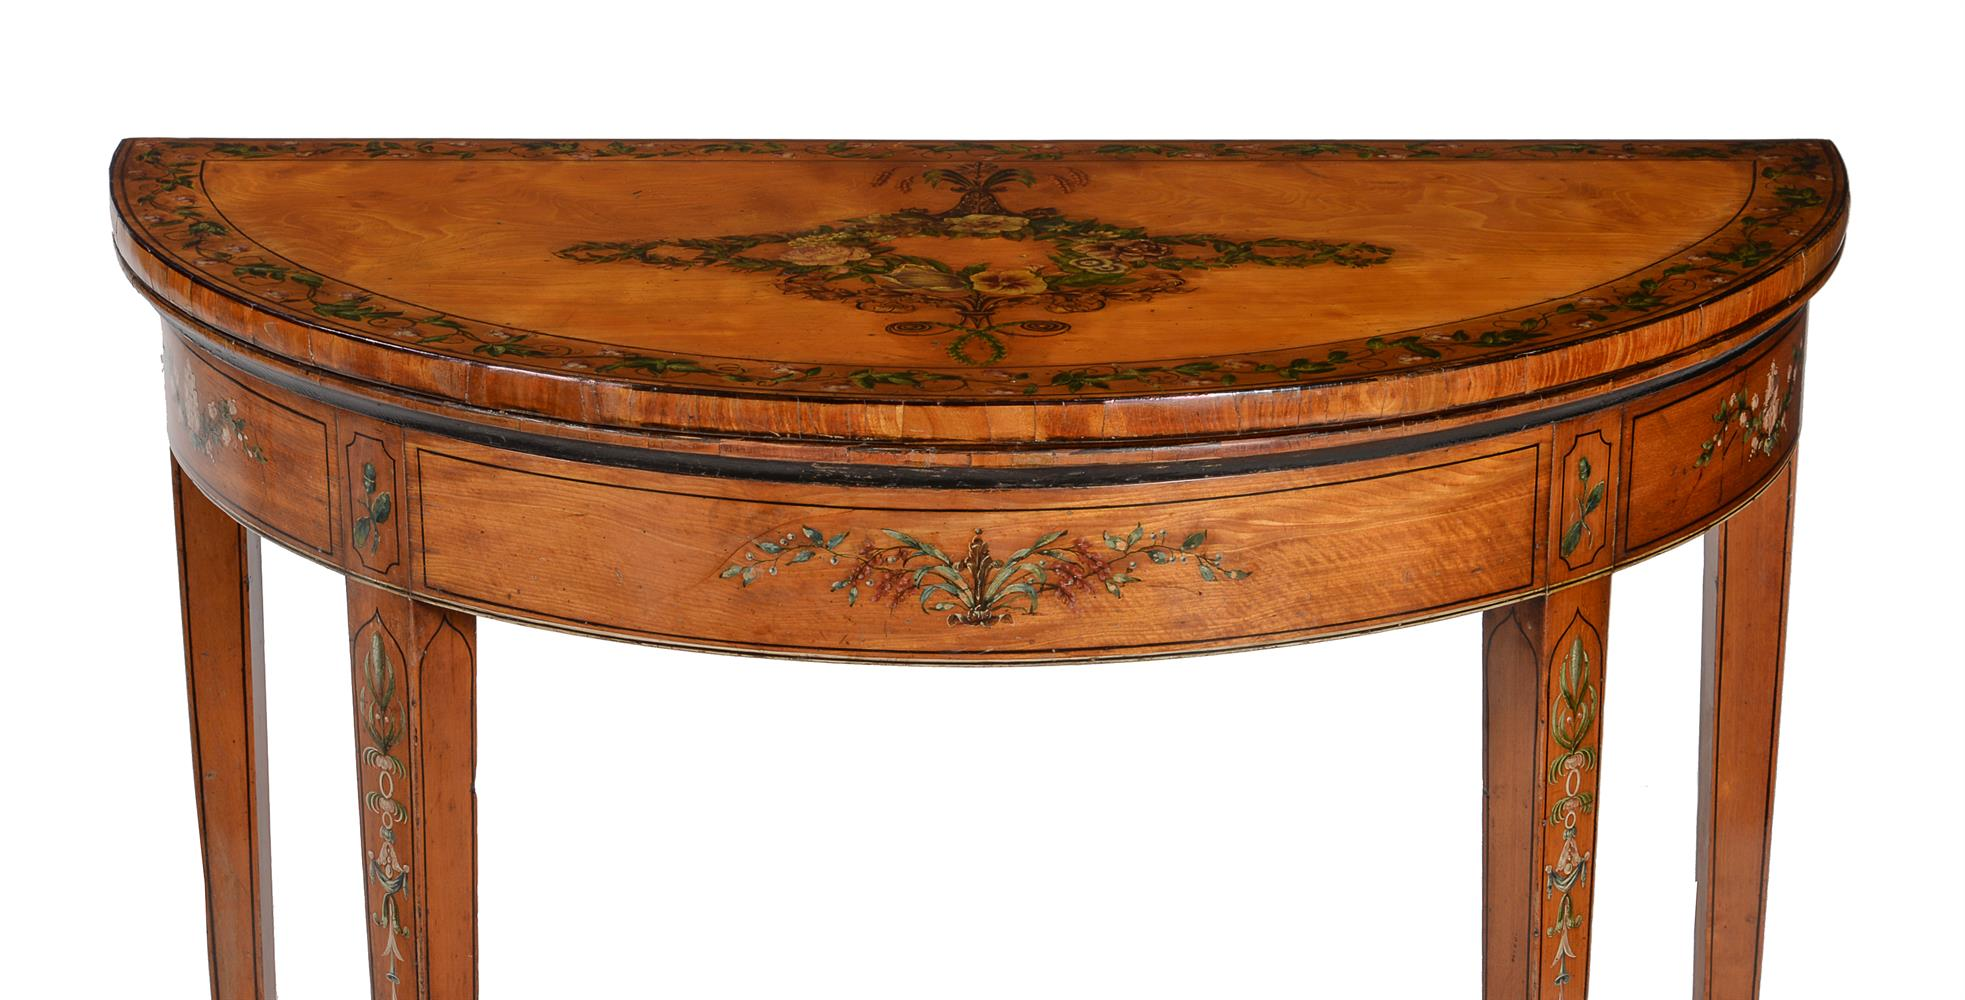 A PAIR OF GEORGE III DECORATED SATINWOOD CARD TABLES, CIRCA 1810 - Image 2 of 8